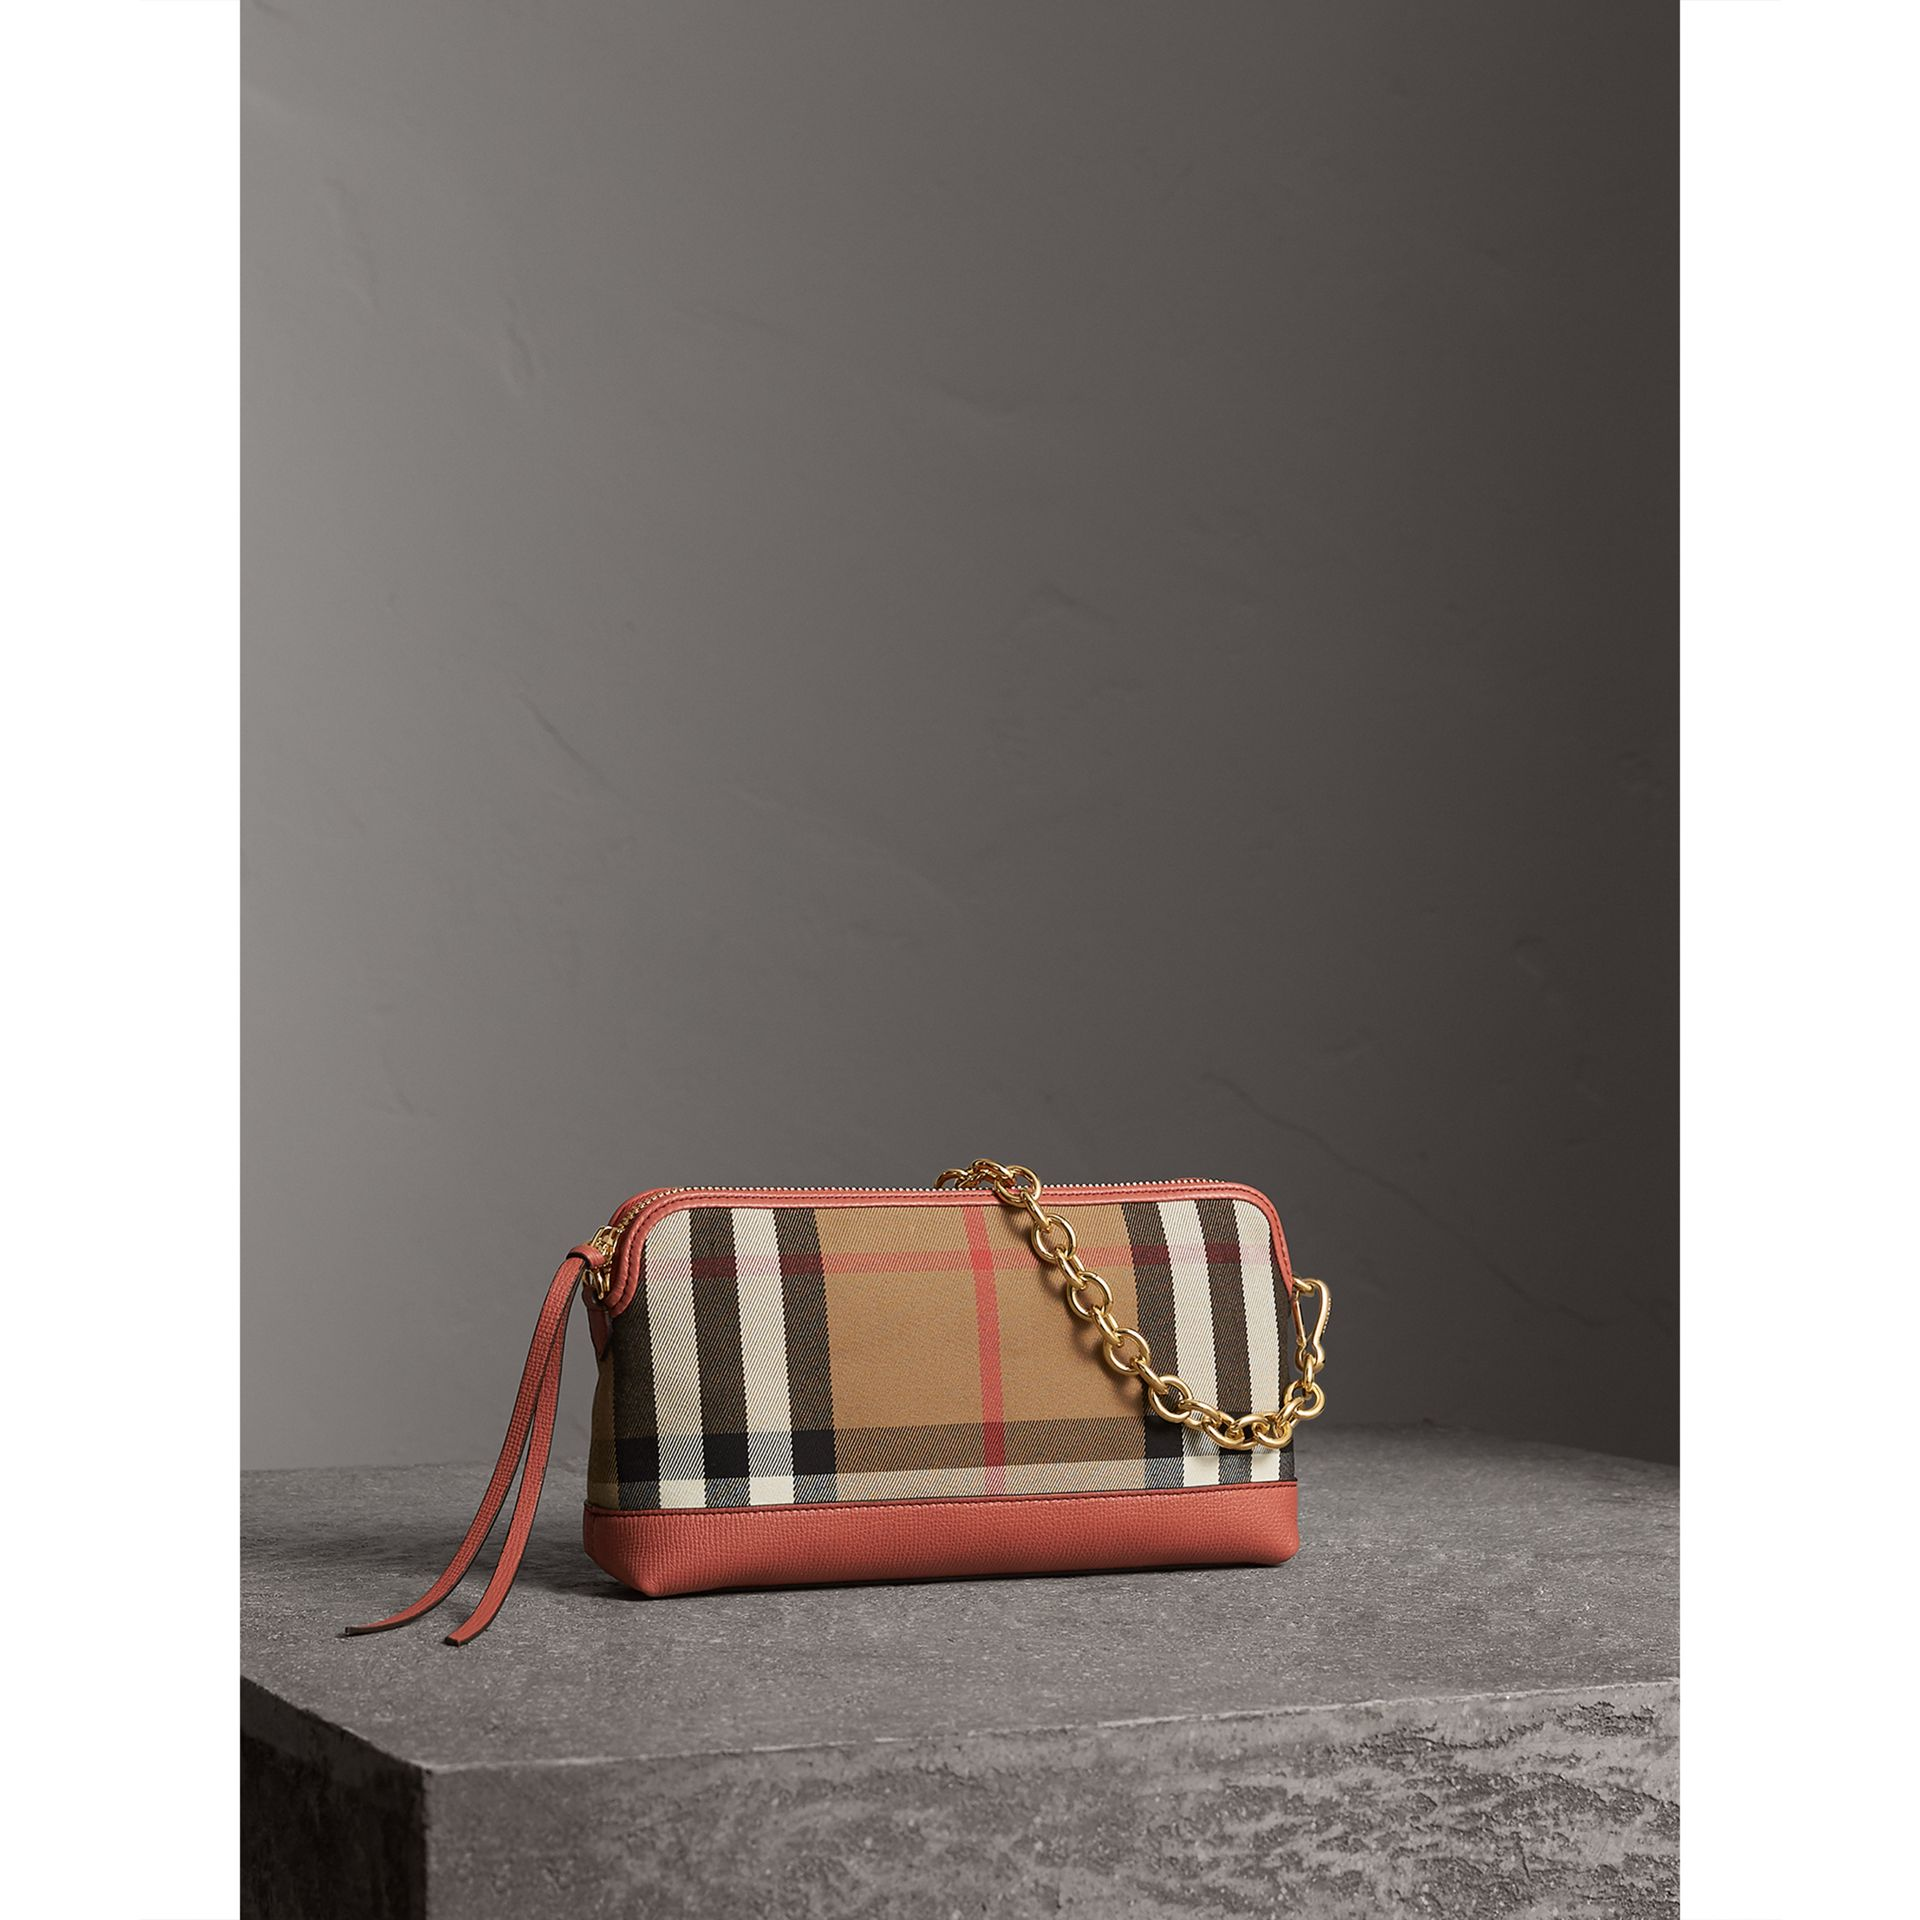 House Check and Leather Clutch Bag in Cinnamon Red - Women | Burberry - gallery image 8